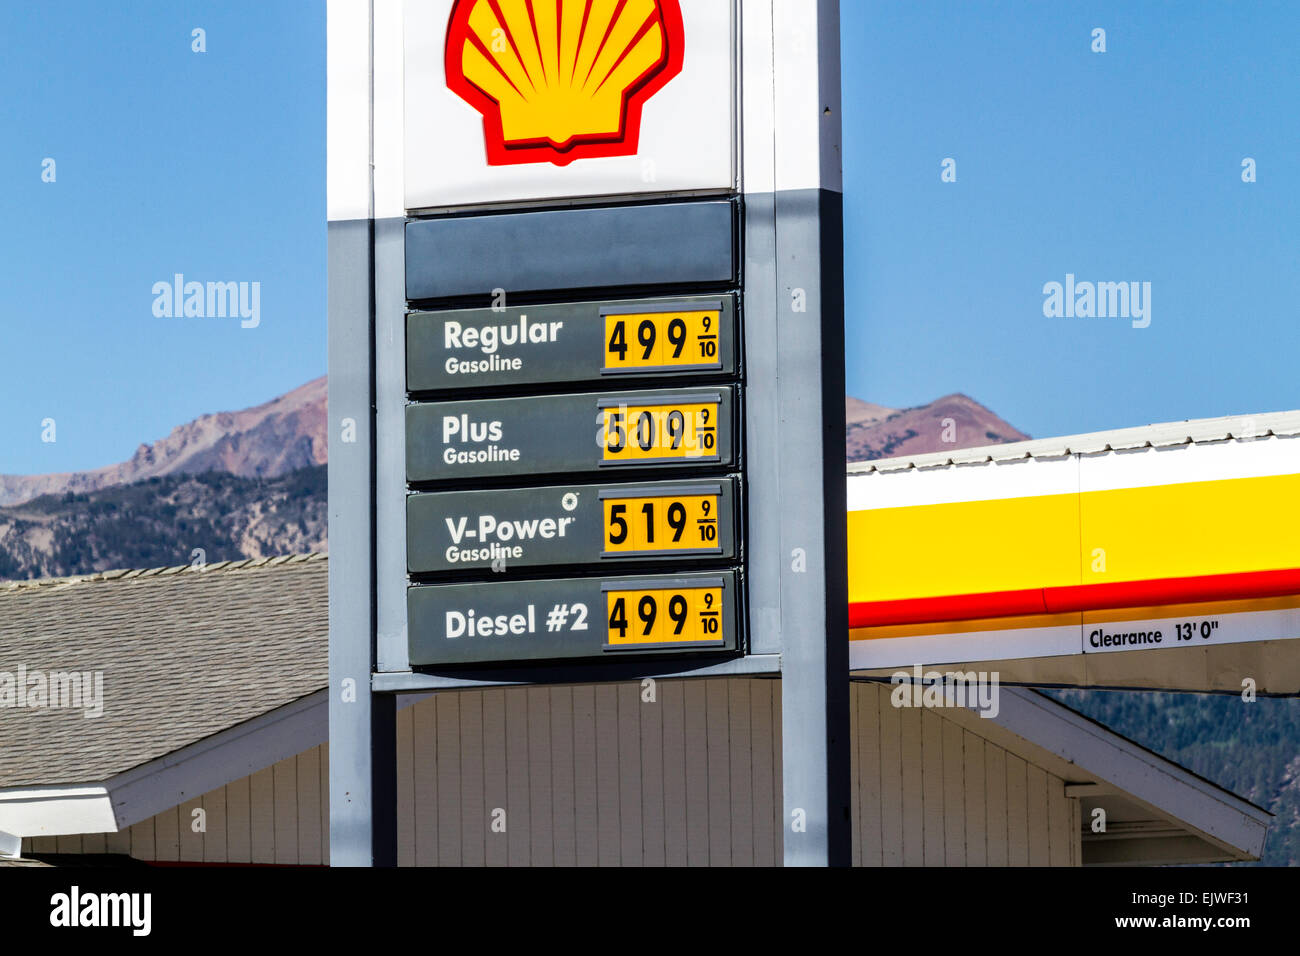 Diesel Gas Near Me >> The Shell Gas Station In Bridgeport California With Very